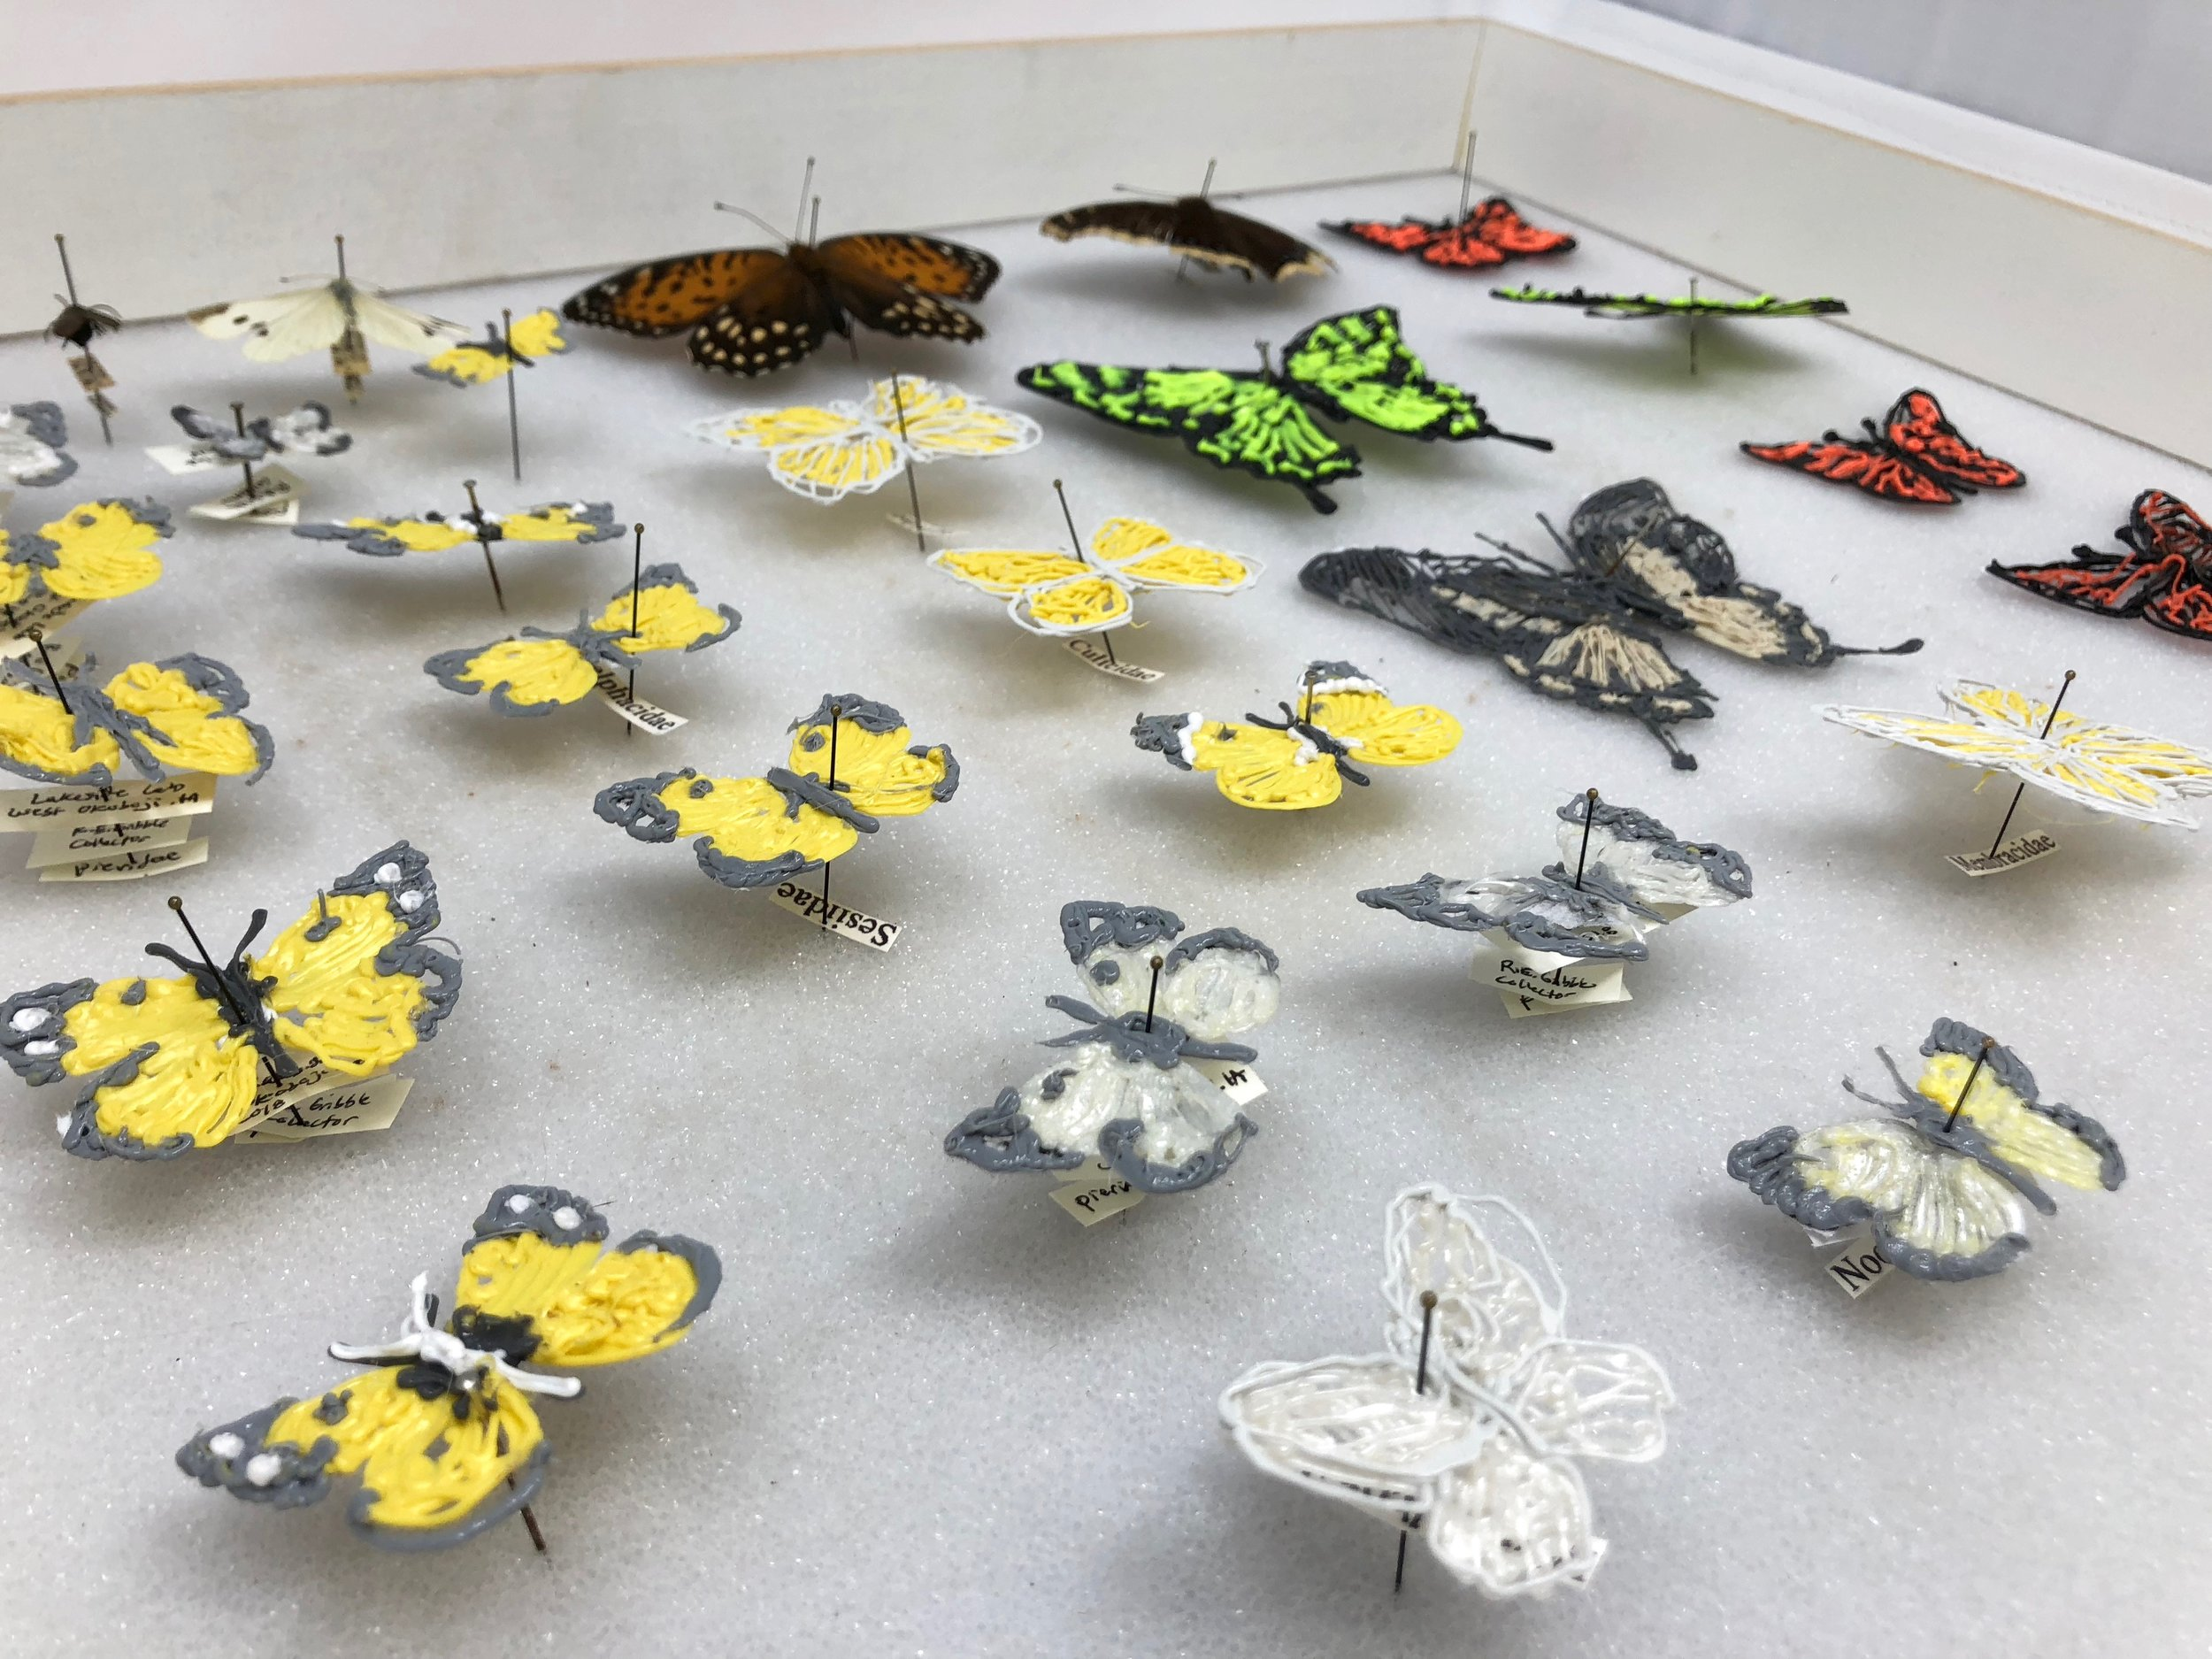 Insect Chart-1, 3D-printed plastic, steel pins, paper labels with ink, 12 x 17.75 x 2.5 inches, 2018